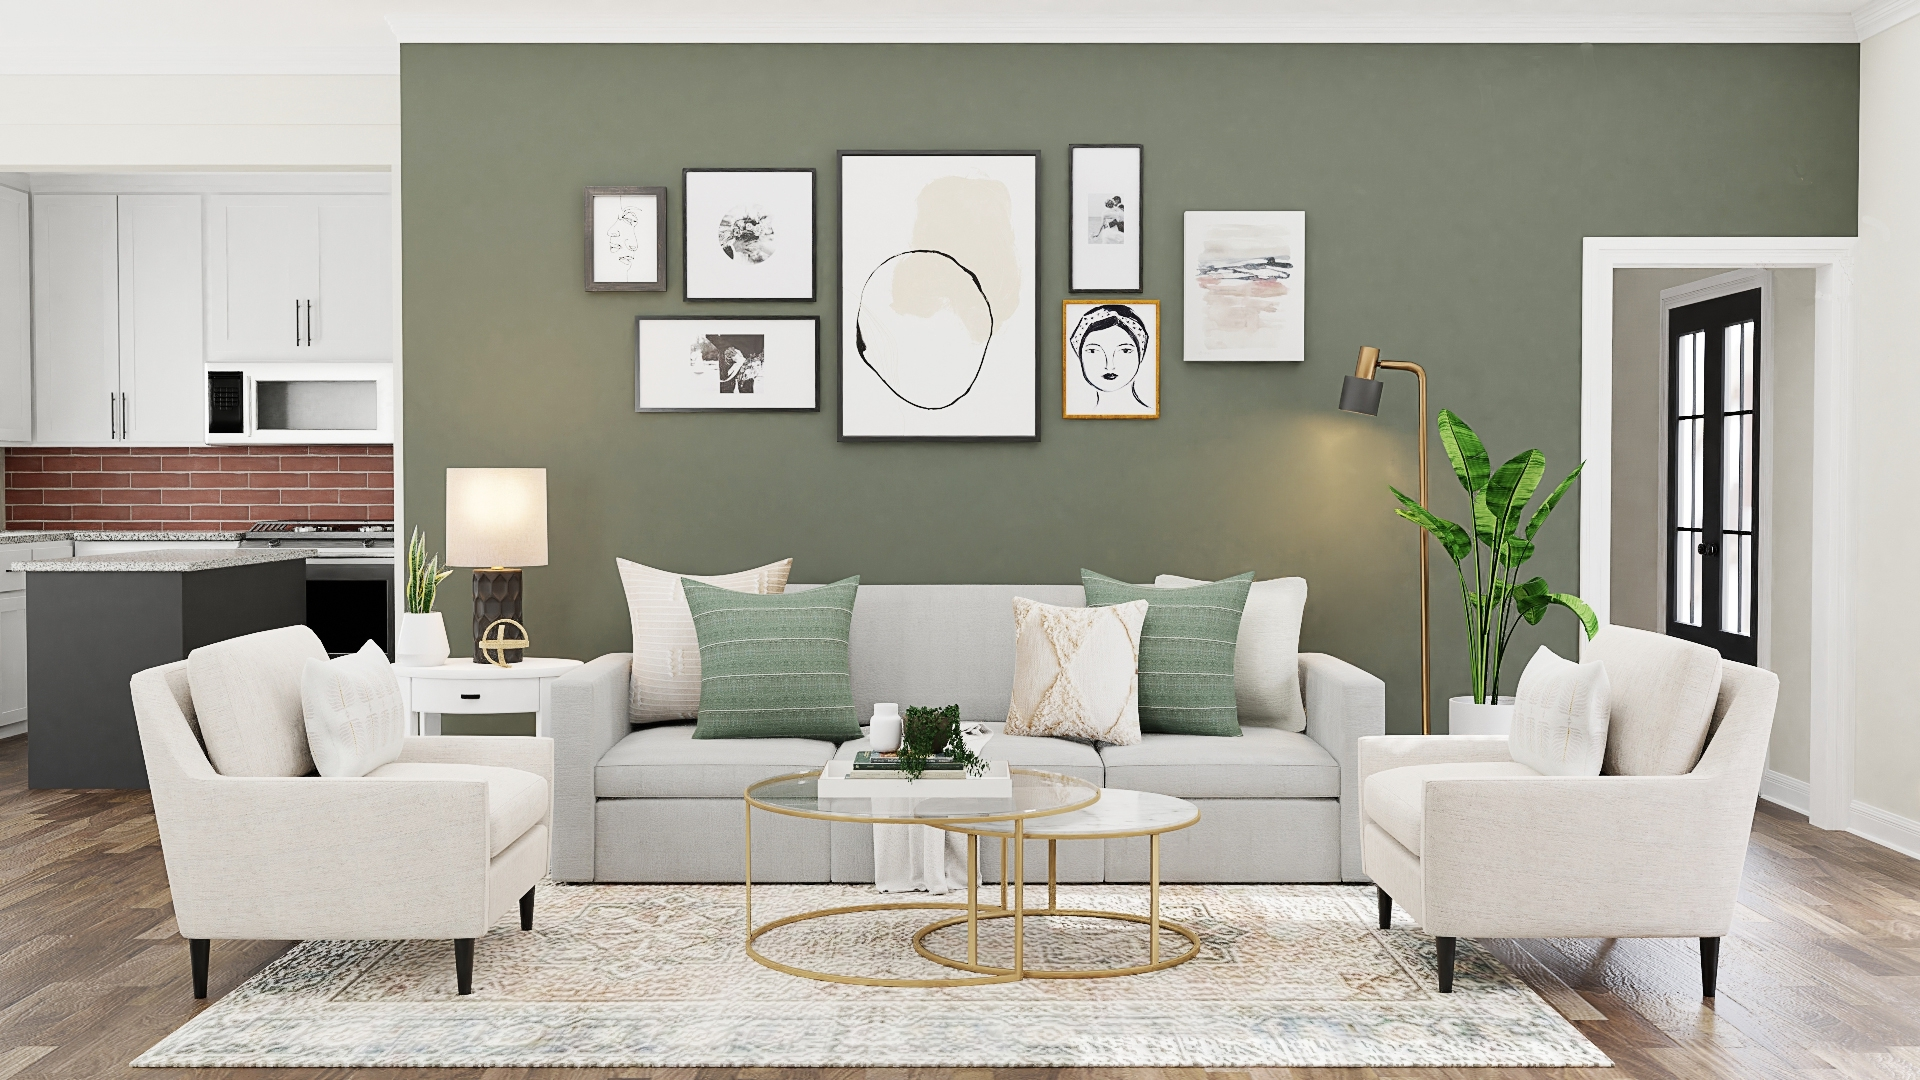 Best & Popular Living Room Paint Colors Of 2020 You Should Nippon Paint Designs Living Room